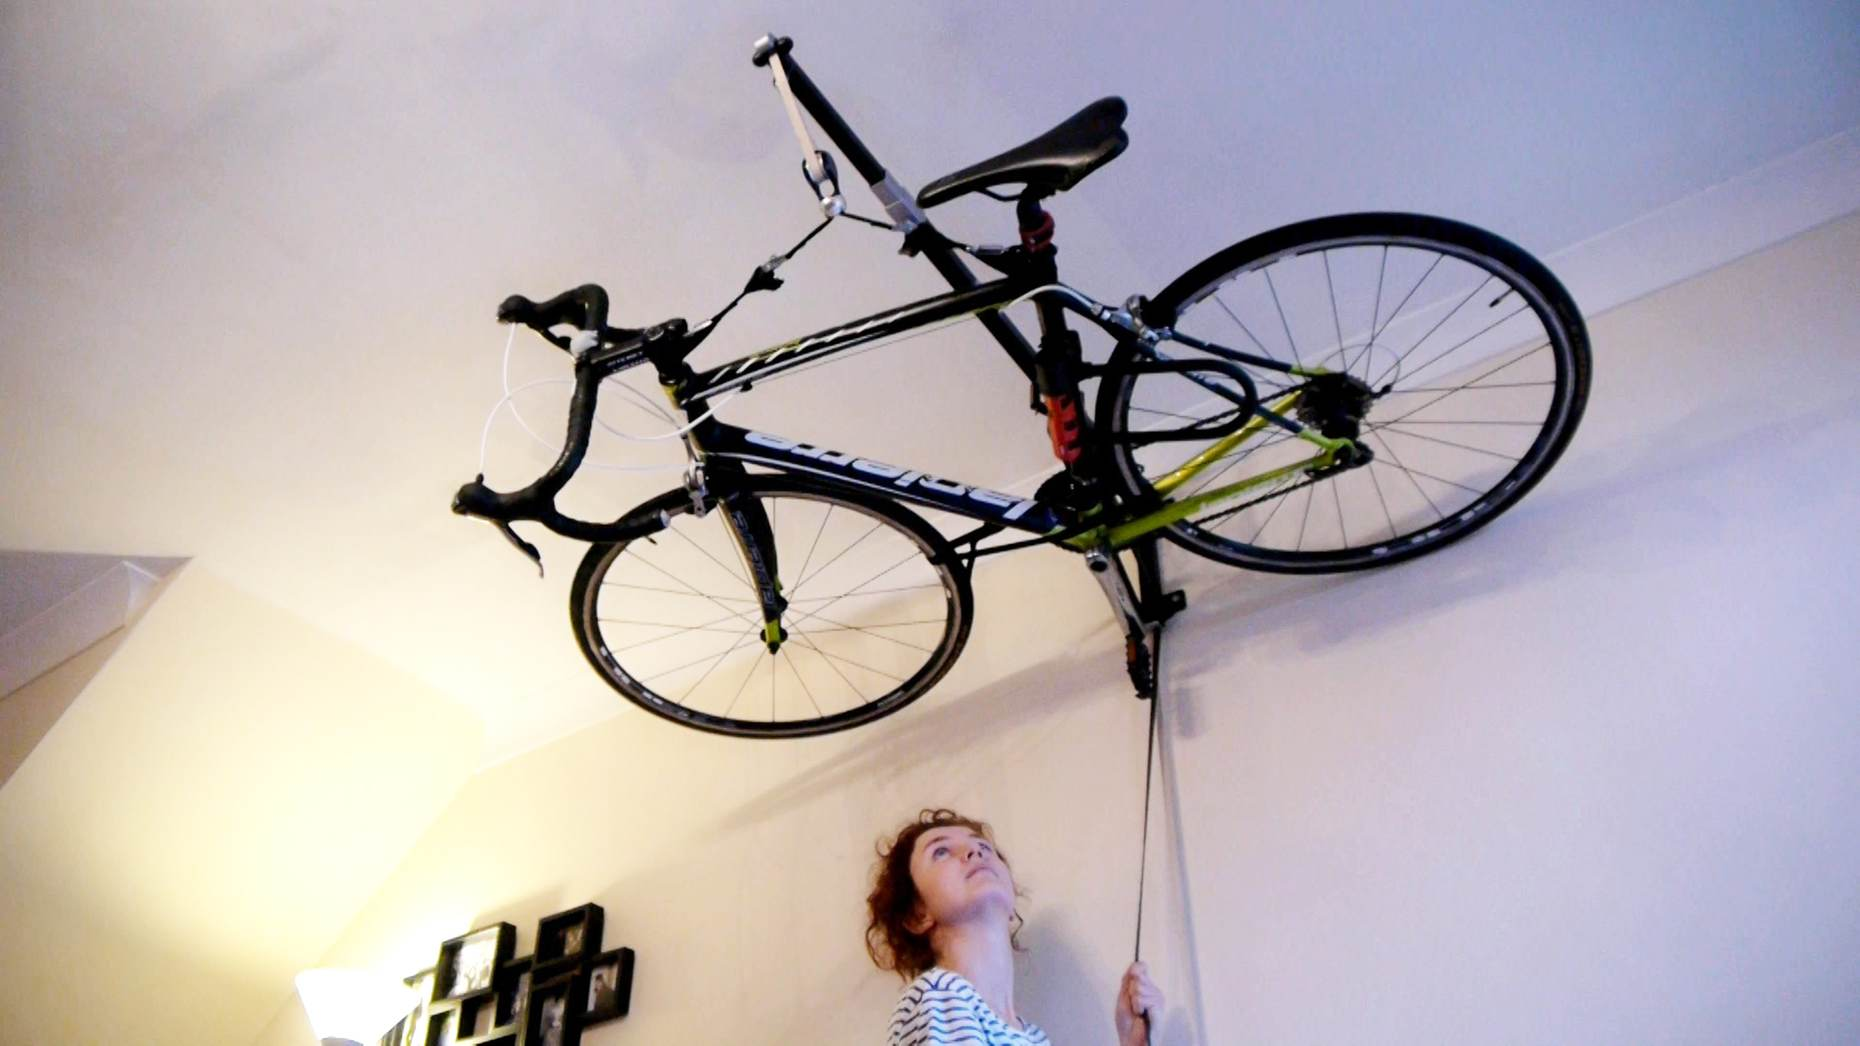 for furniture best hooks vans bike bikes aluminum ceiling garage of racks minimalist systems rack and roof brilliant shed bicycle stand gorgeous size furnitures storage apartment full trucks